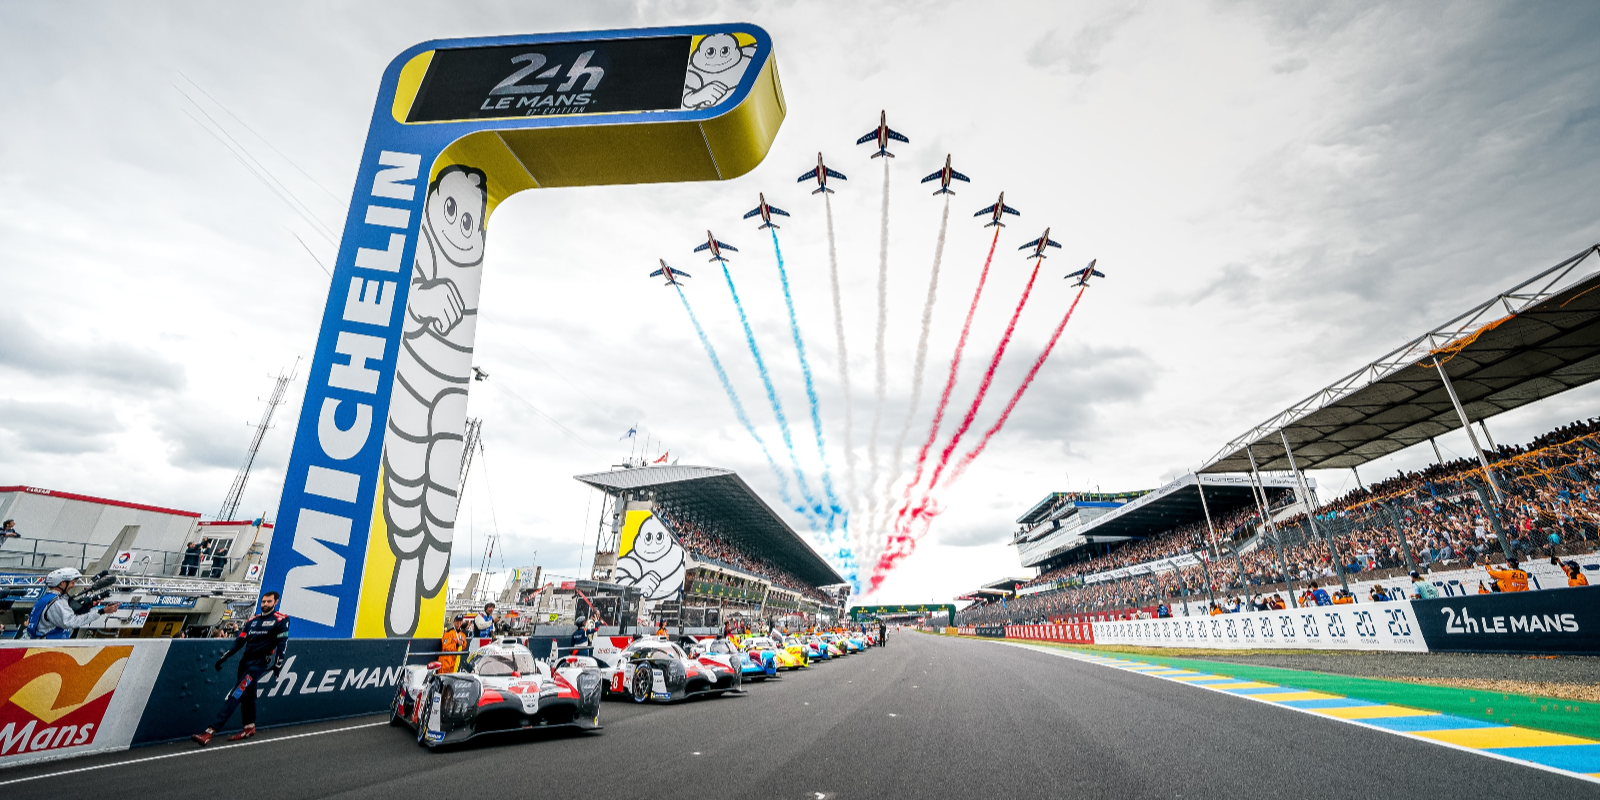 24 HOURS OF LE MANS: SEE YOU IN 2021…